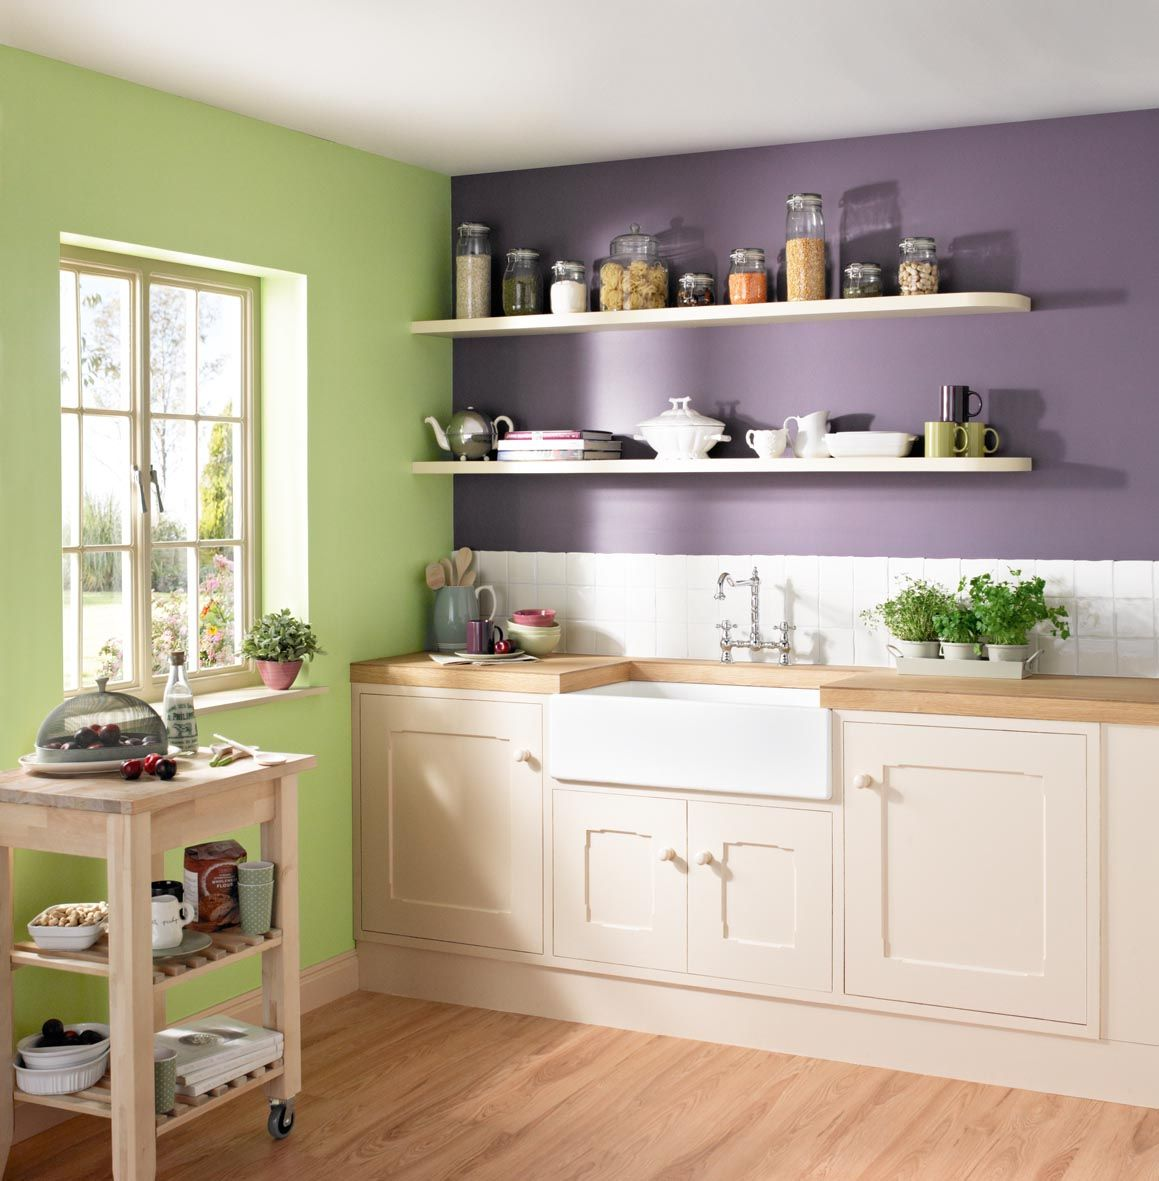 Purple And Green Kitchen Accessories: 10 Beautiful Kitchens With Purple Walls